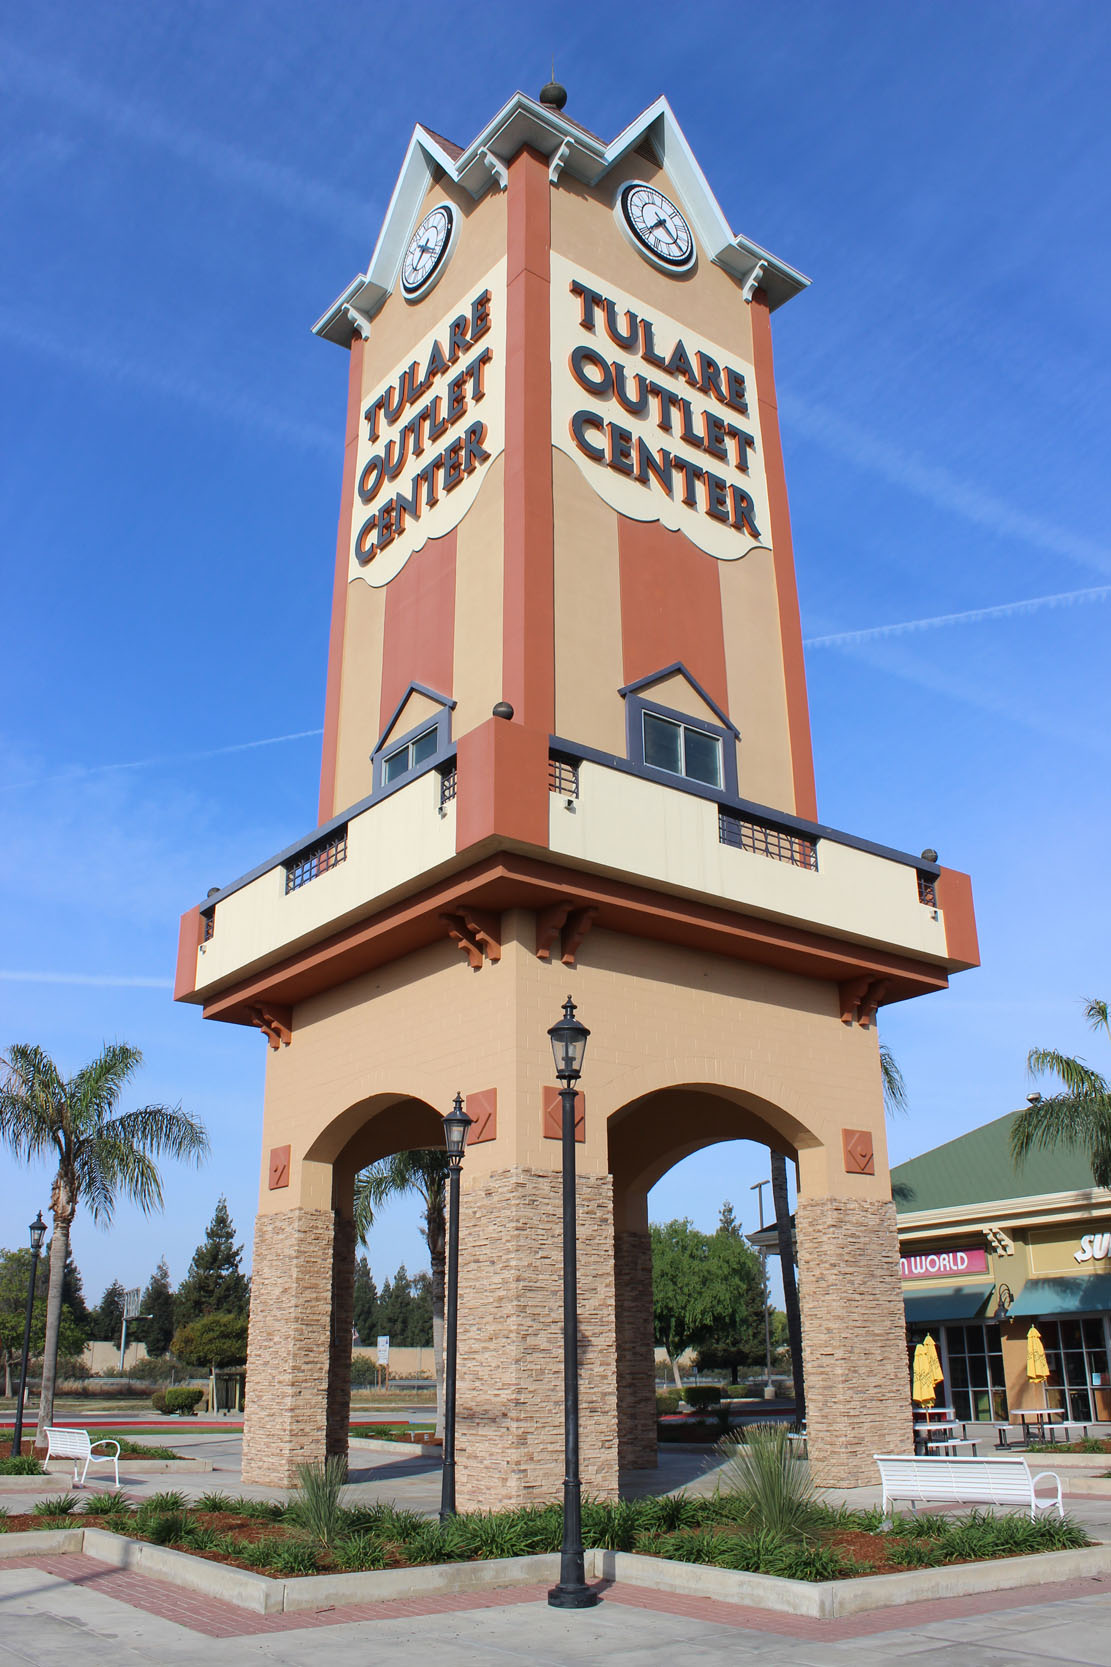 Tulare Outlet Clock Tower